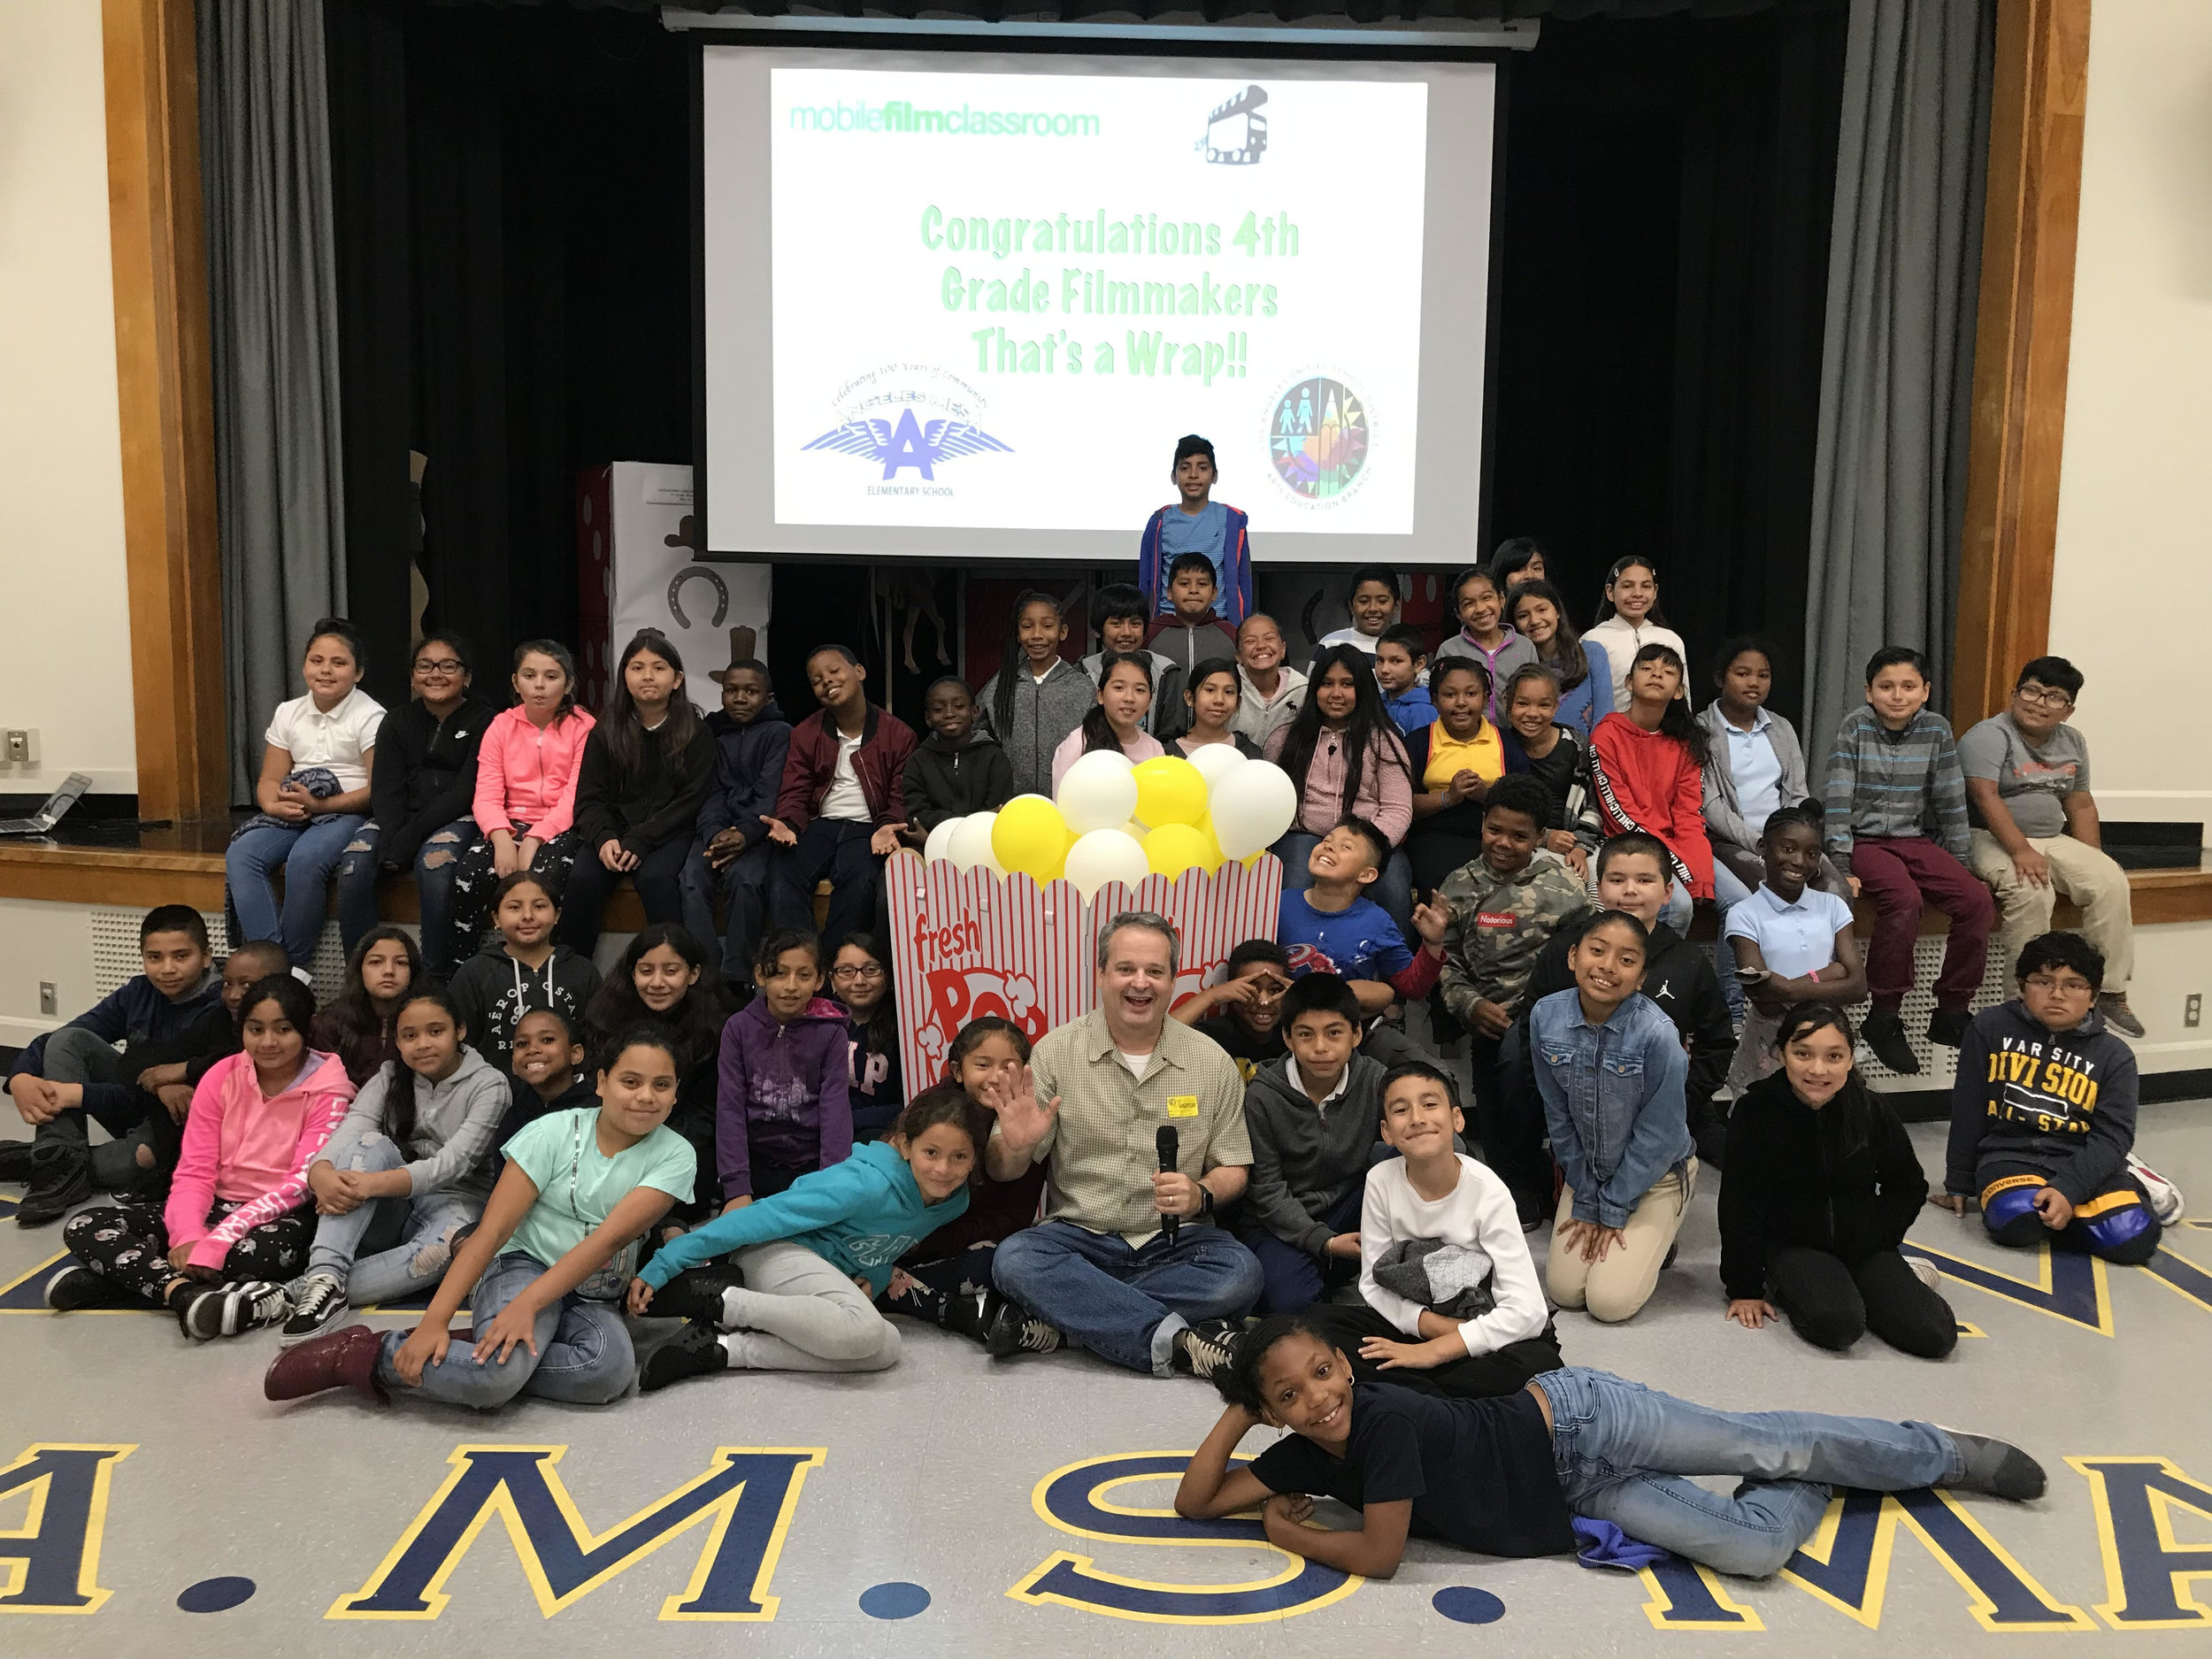 Frank and 4th grade students premiere their films at Angeles Mesa DREAM Magnet Elementary